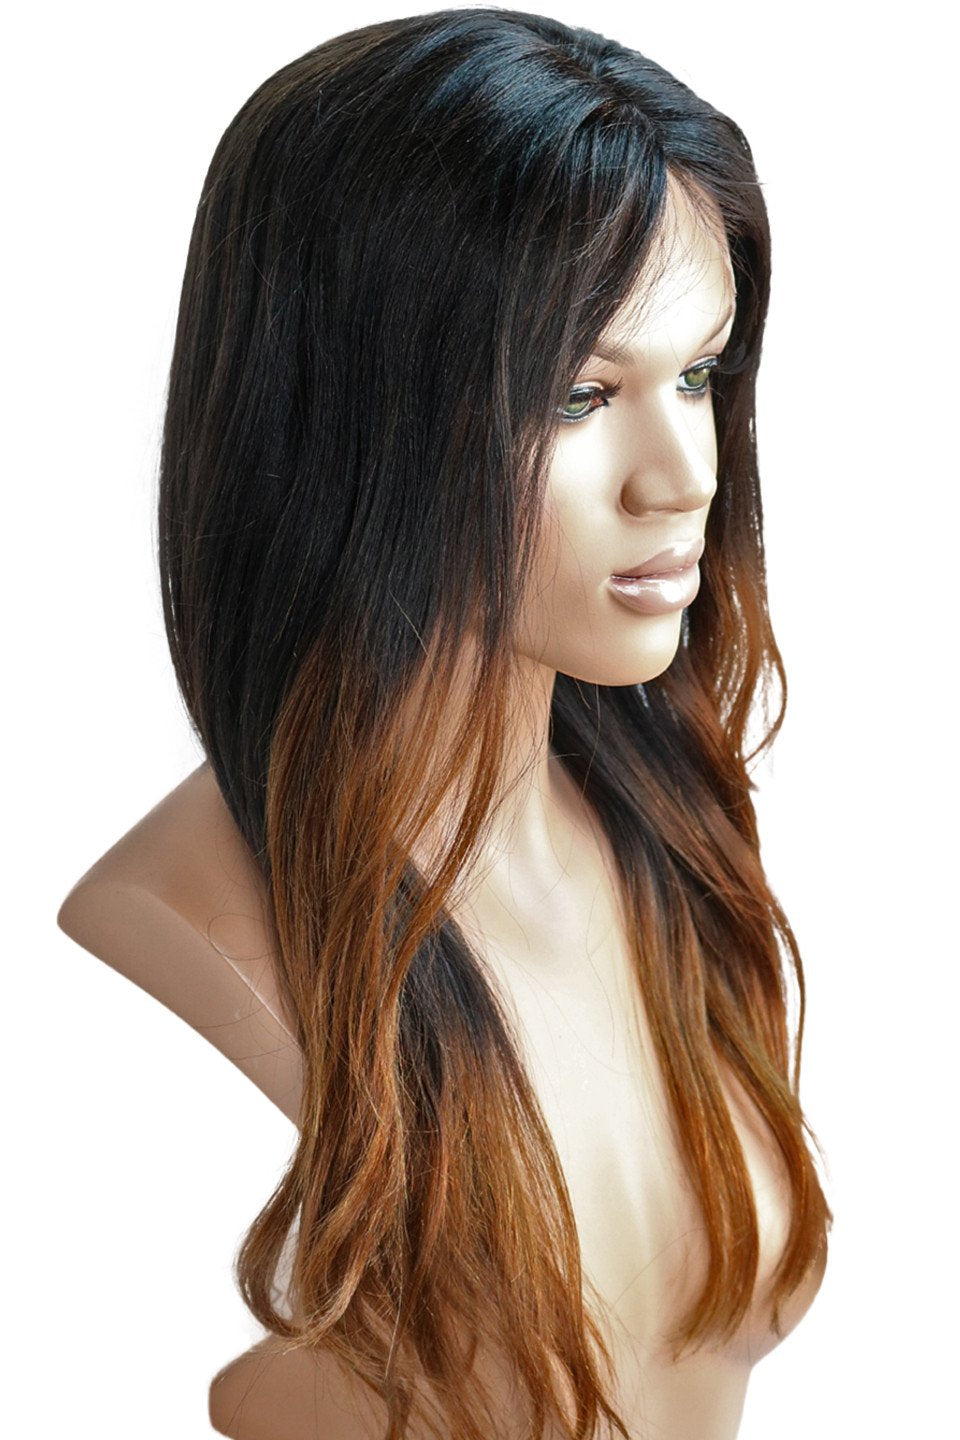 Clearance LACE FRONT WIG: Alissa Brown Ombre 16inches medium cap